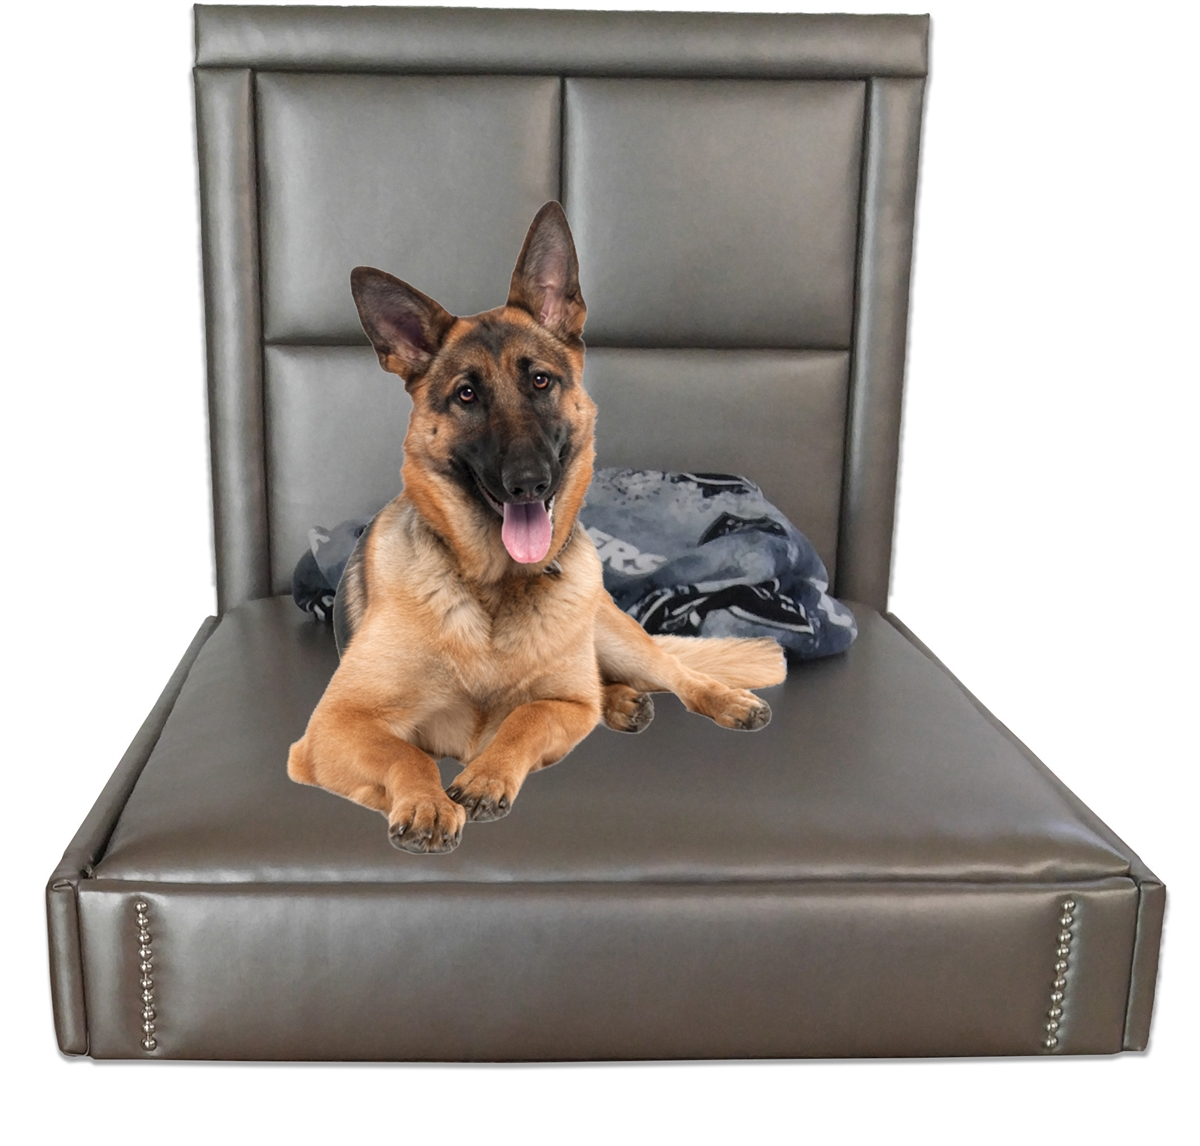 Luxury Dog Beds For Large Dogs Cheaper Than Retail Price Buy Clothing Accessories And Lifestyle Products For Women Men